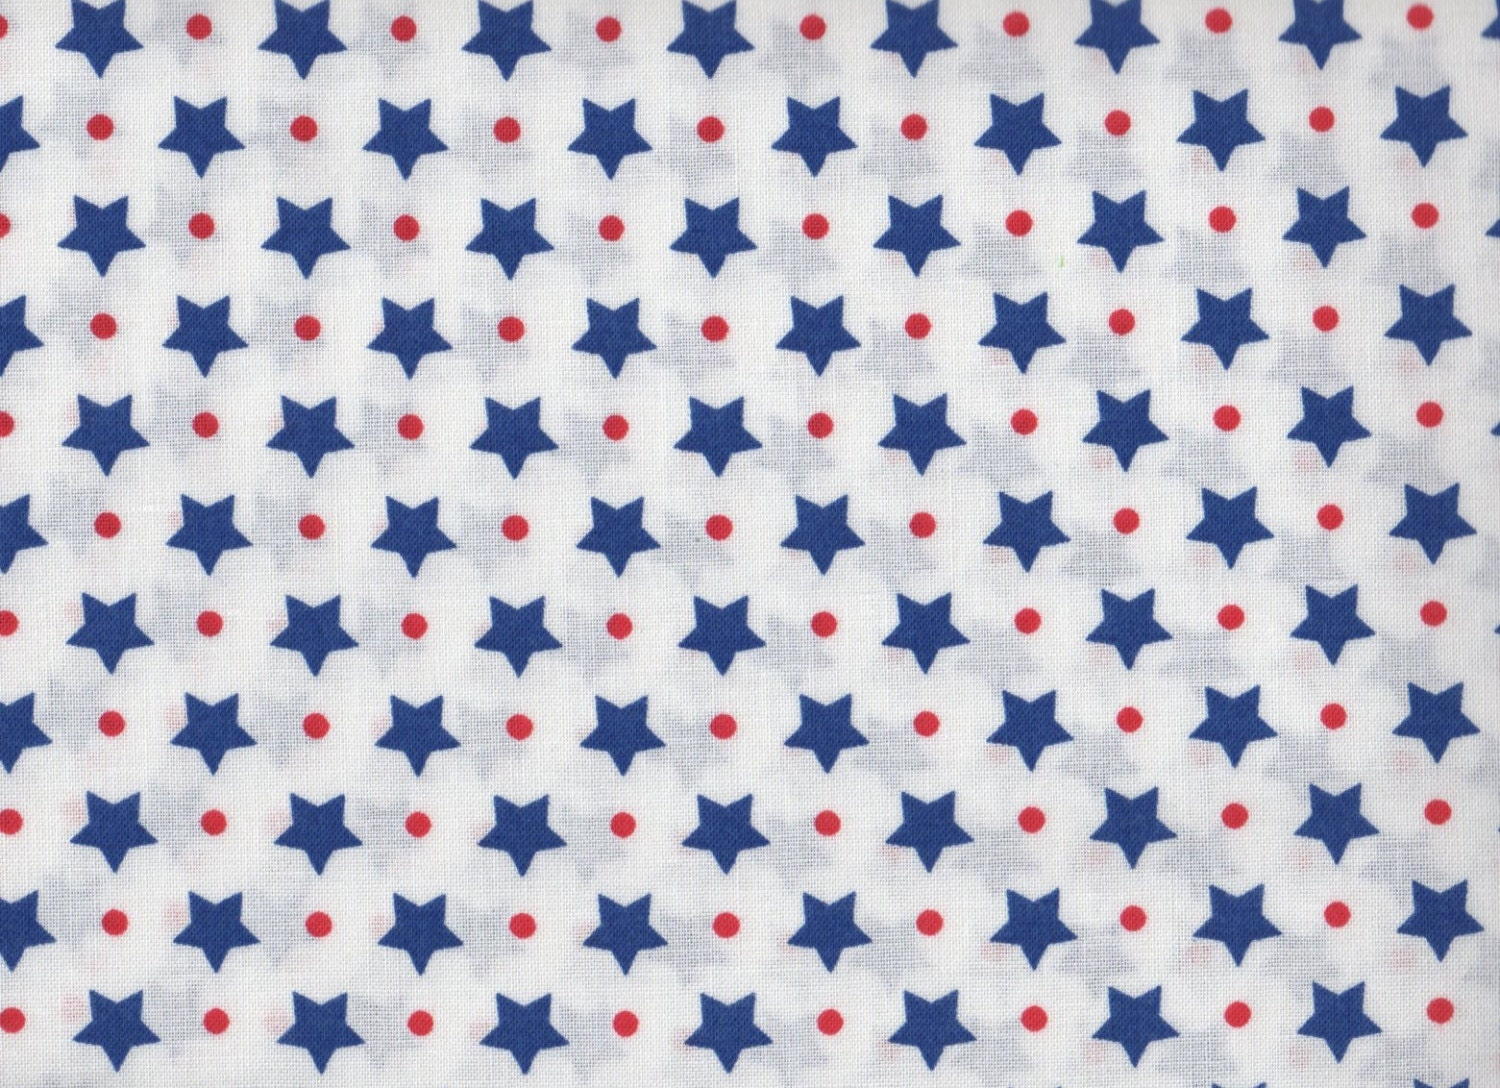 Stars freedom fabric red and white stars fabric red for Star fabric australia